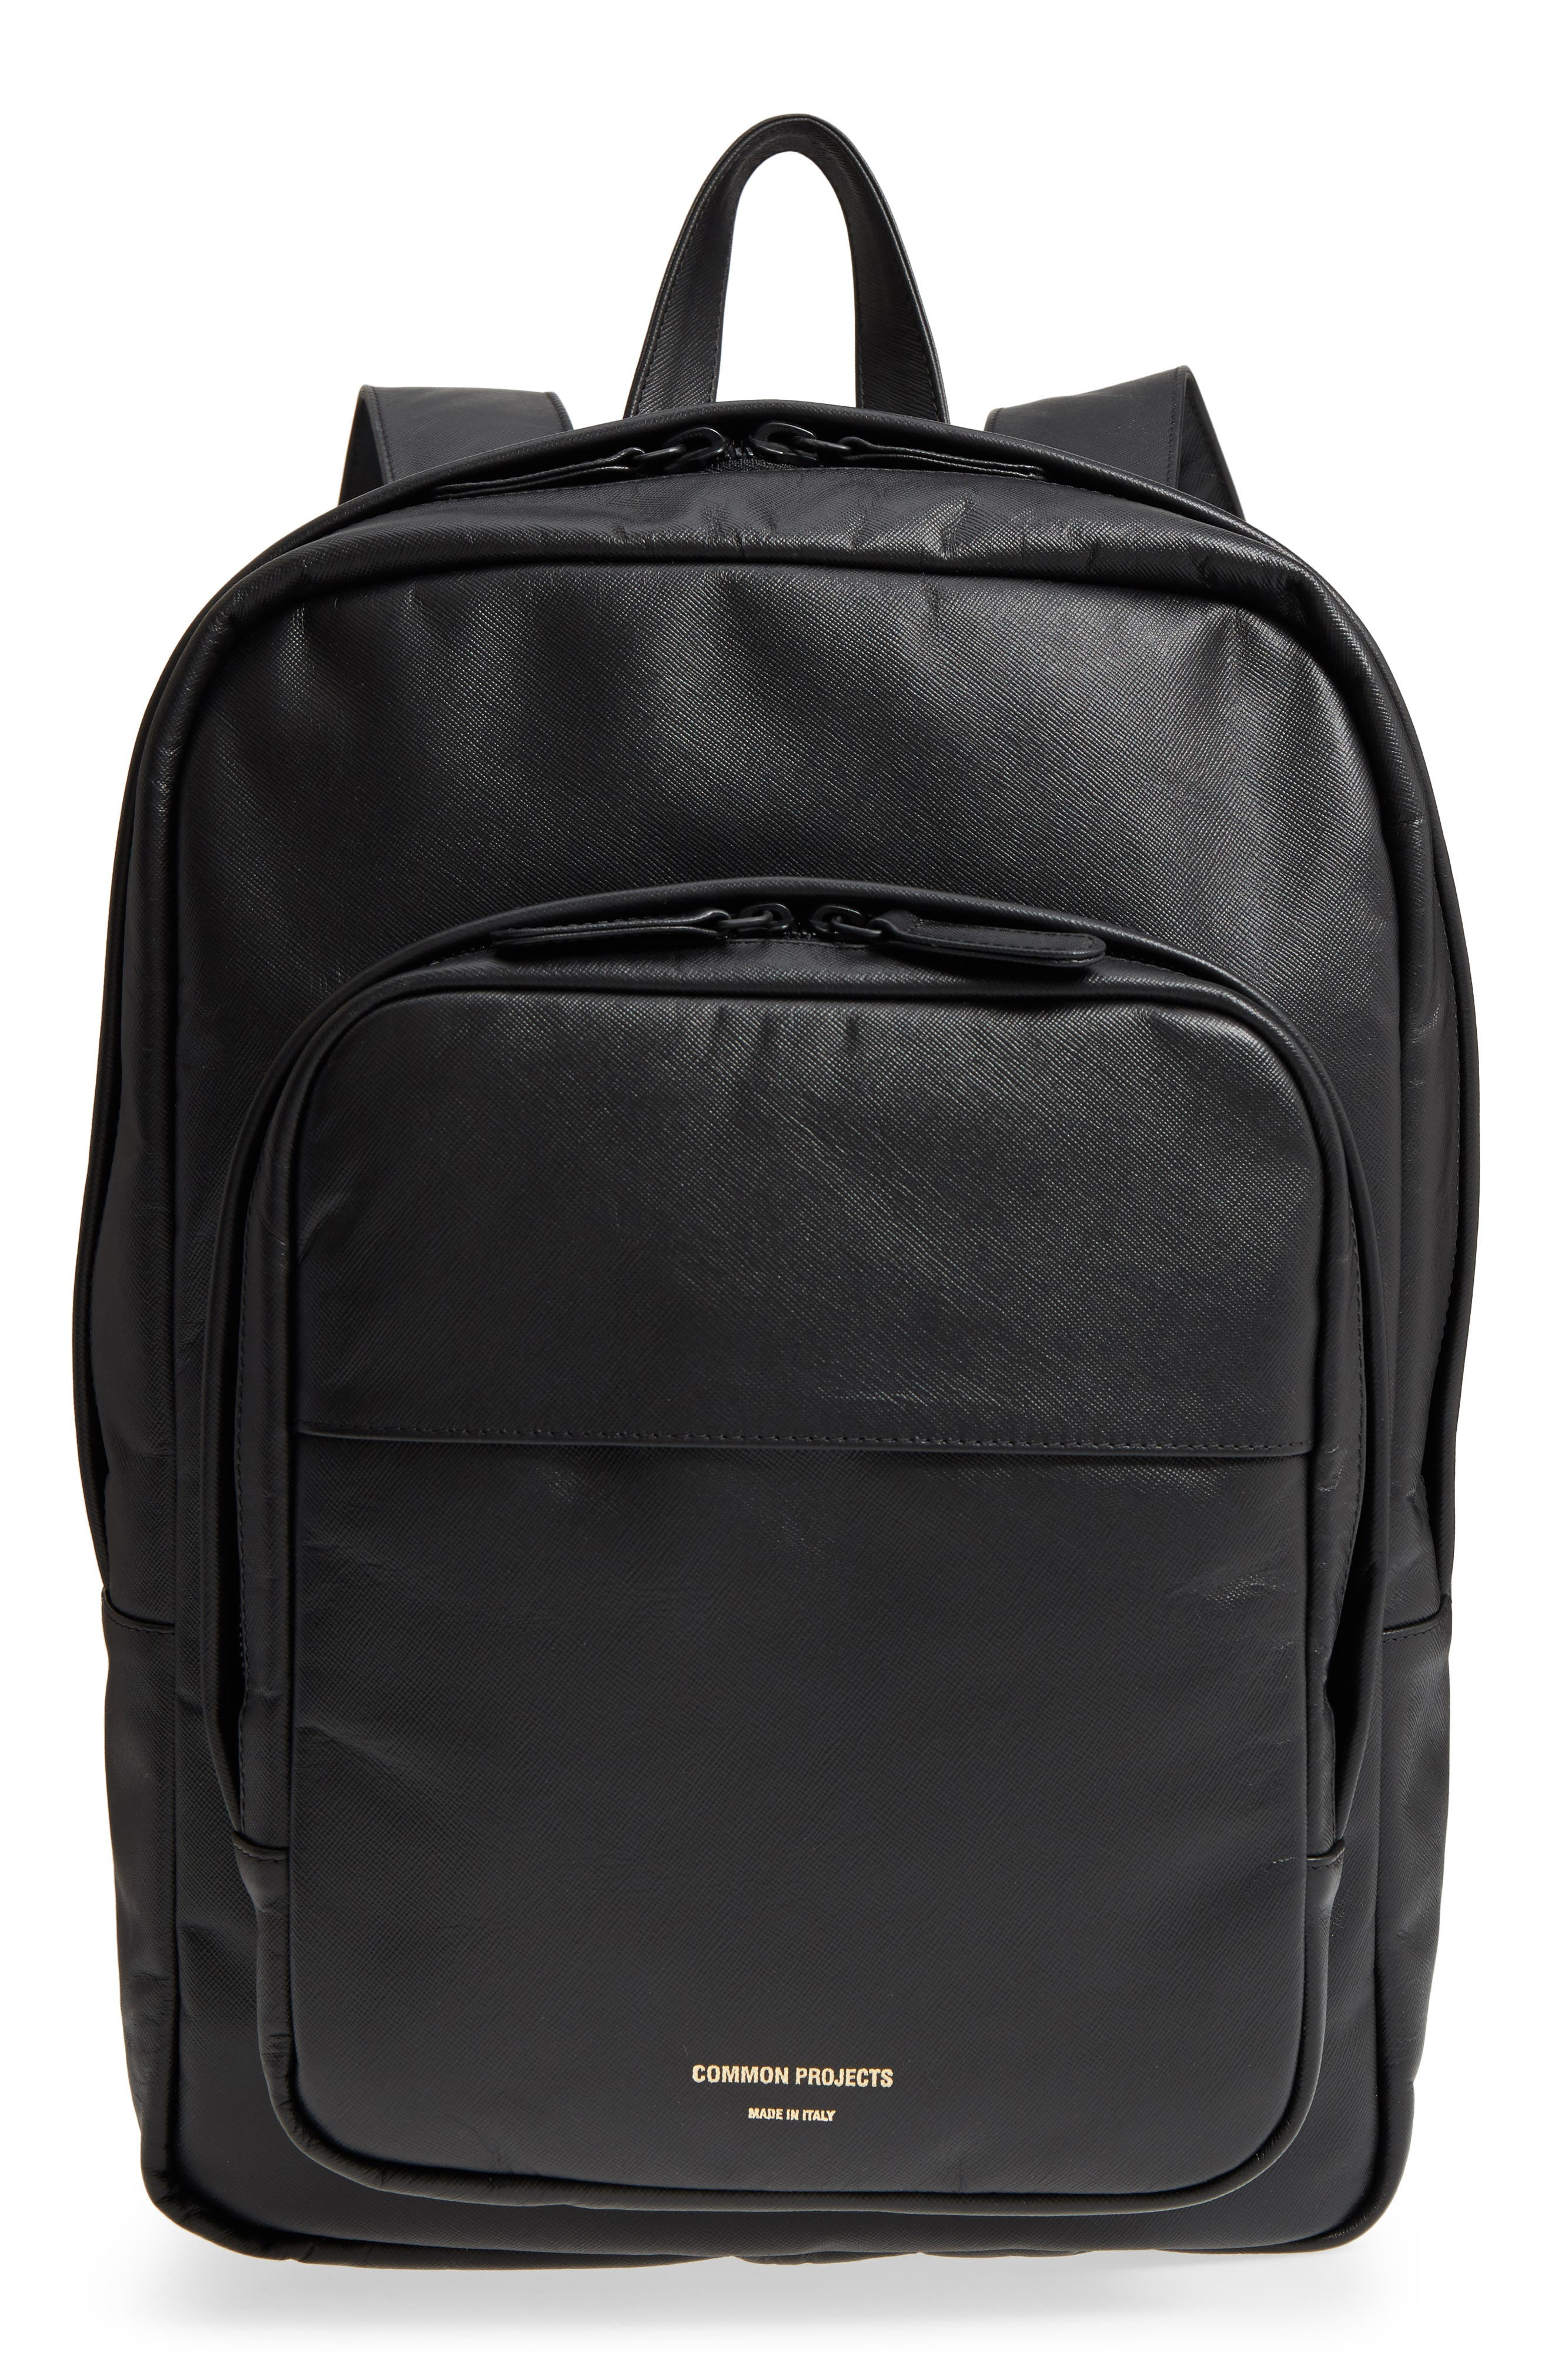 Common Projects Saffiano Leather Backpack